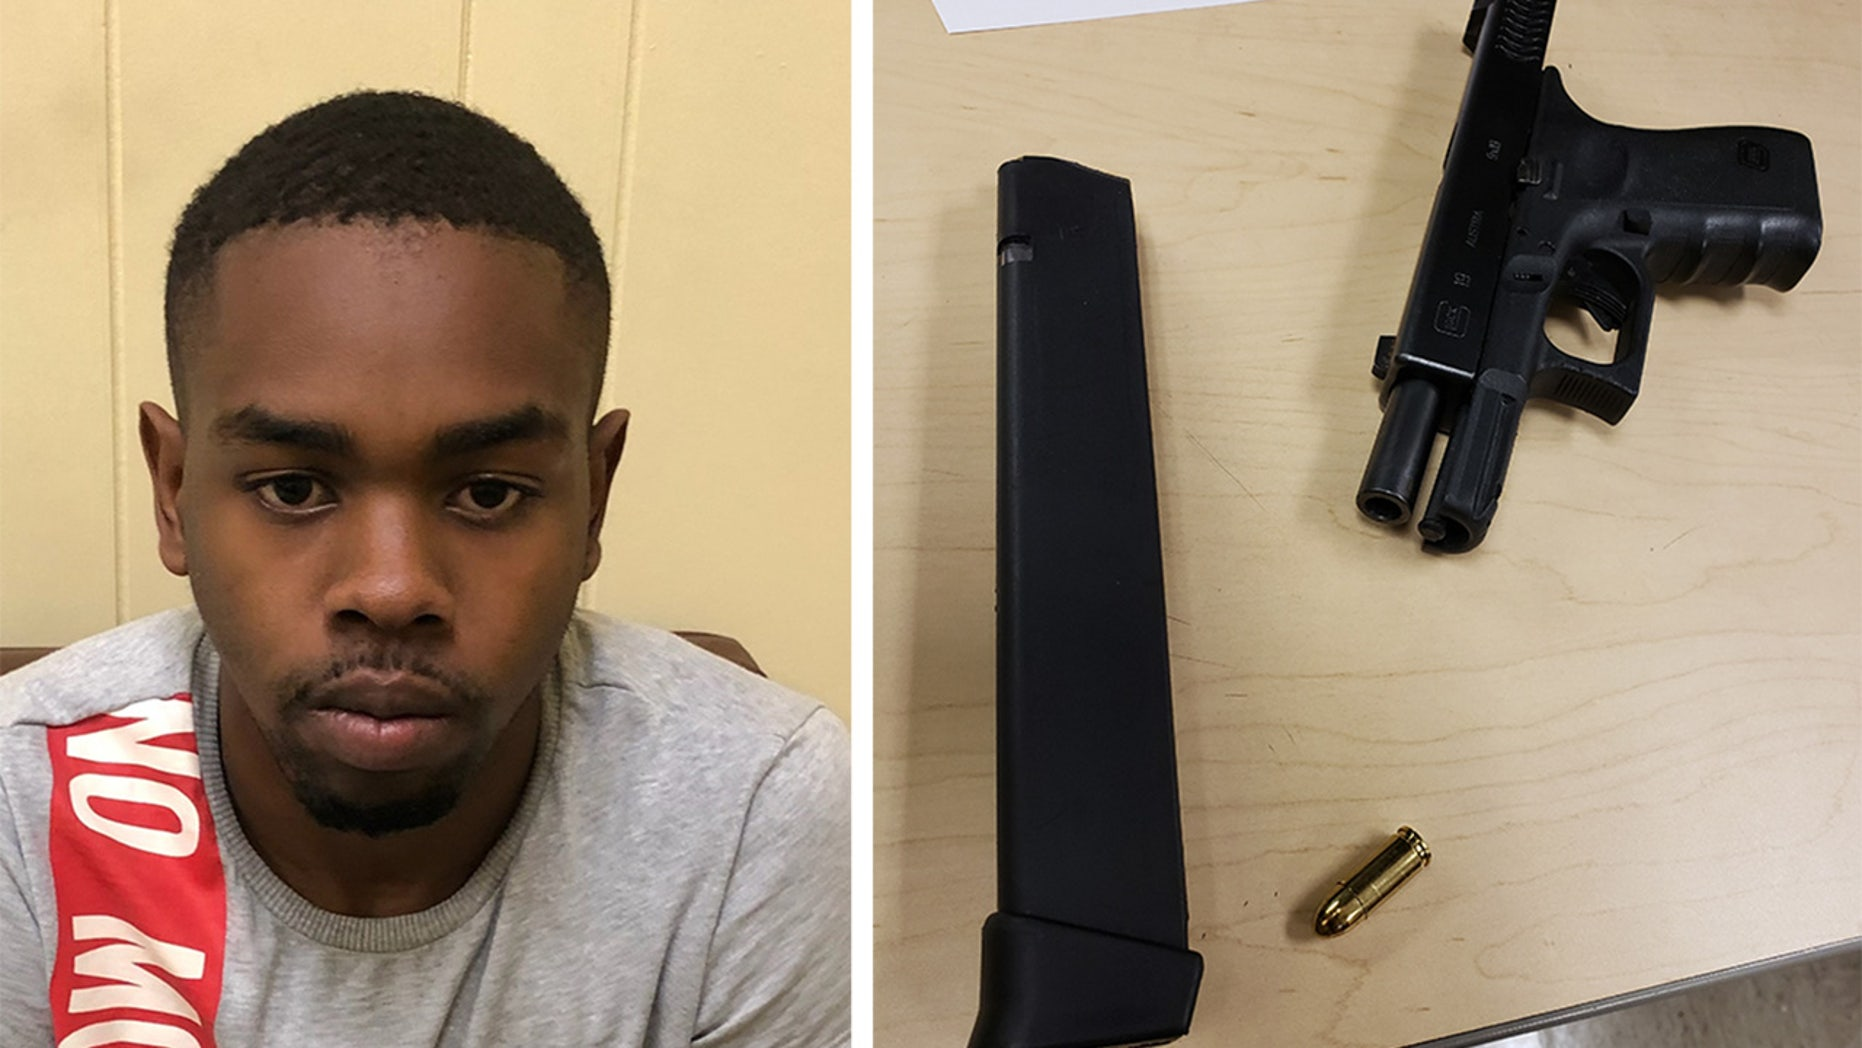 Reginald D. Wooding Jr., 22, is accused of having drugs and a loaded gun inside the vehicle he was going to use for a driver's test.